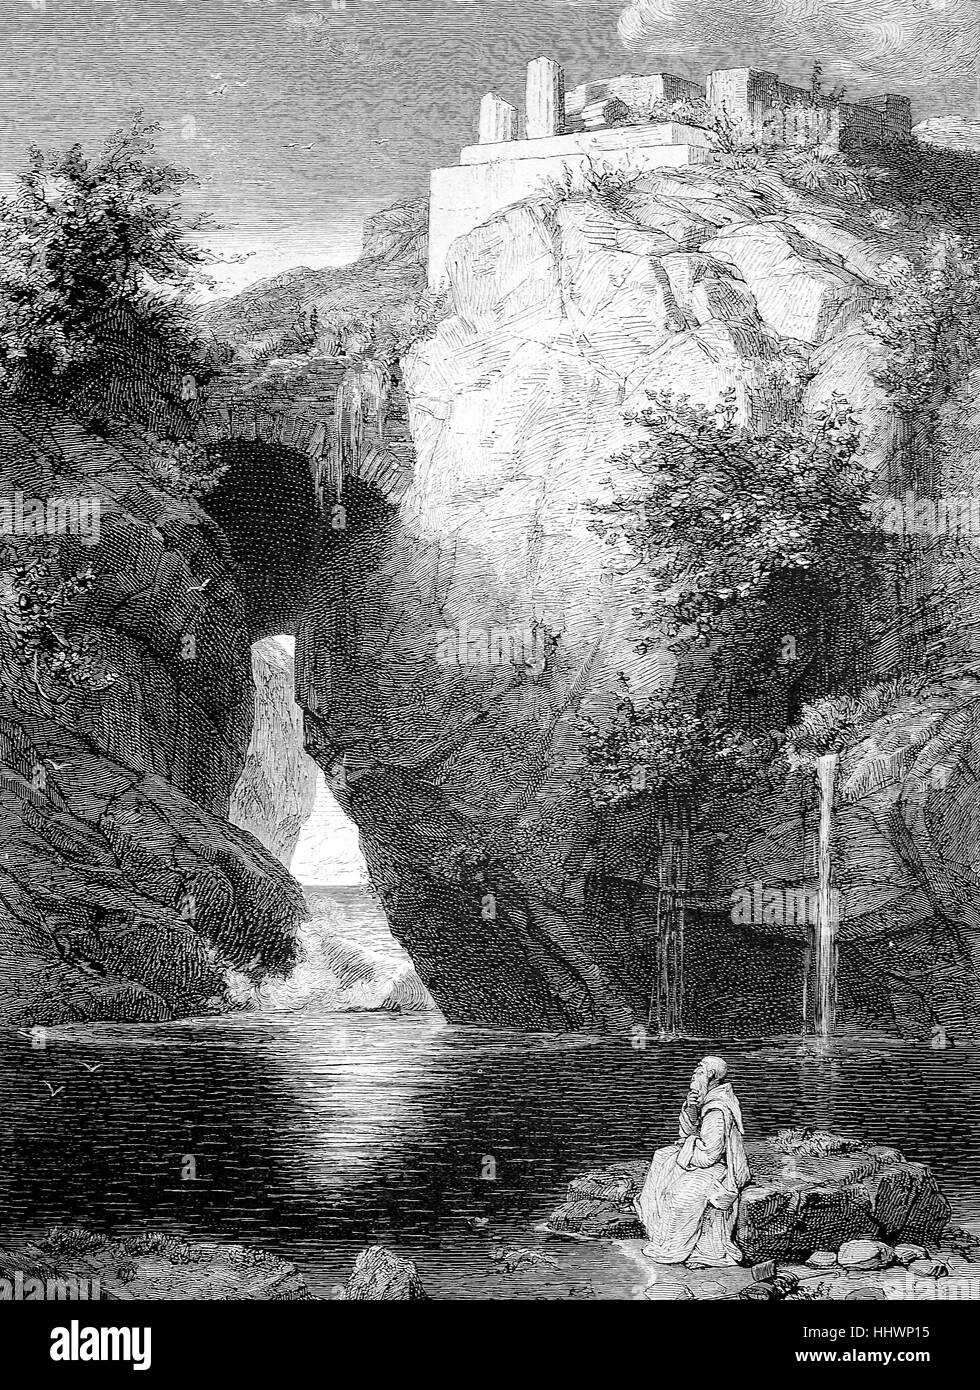 Bath of the Diana in Sorrento, view to a rocky break where waves break, Above a decayed temple and down at the water - Stock Image